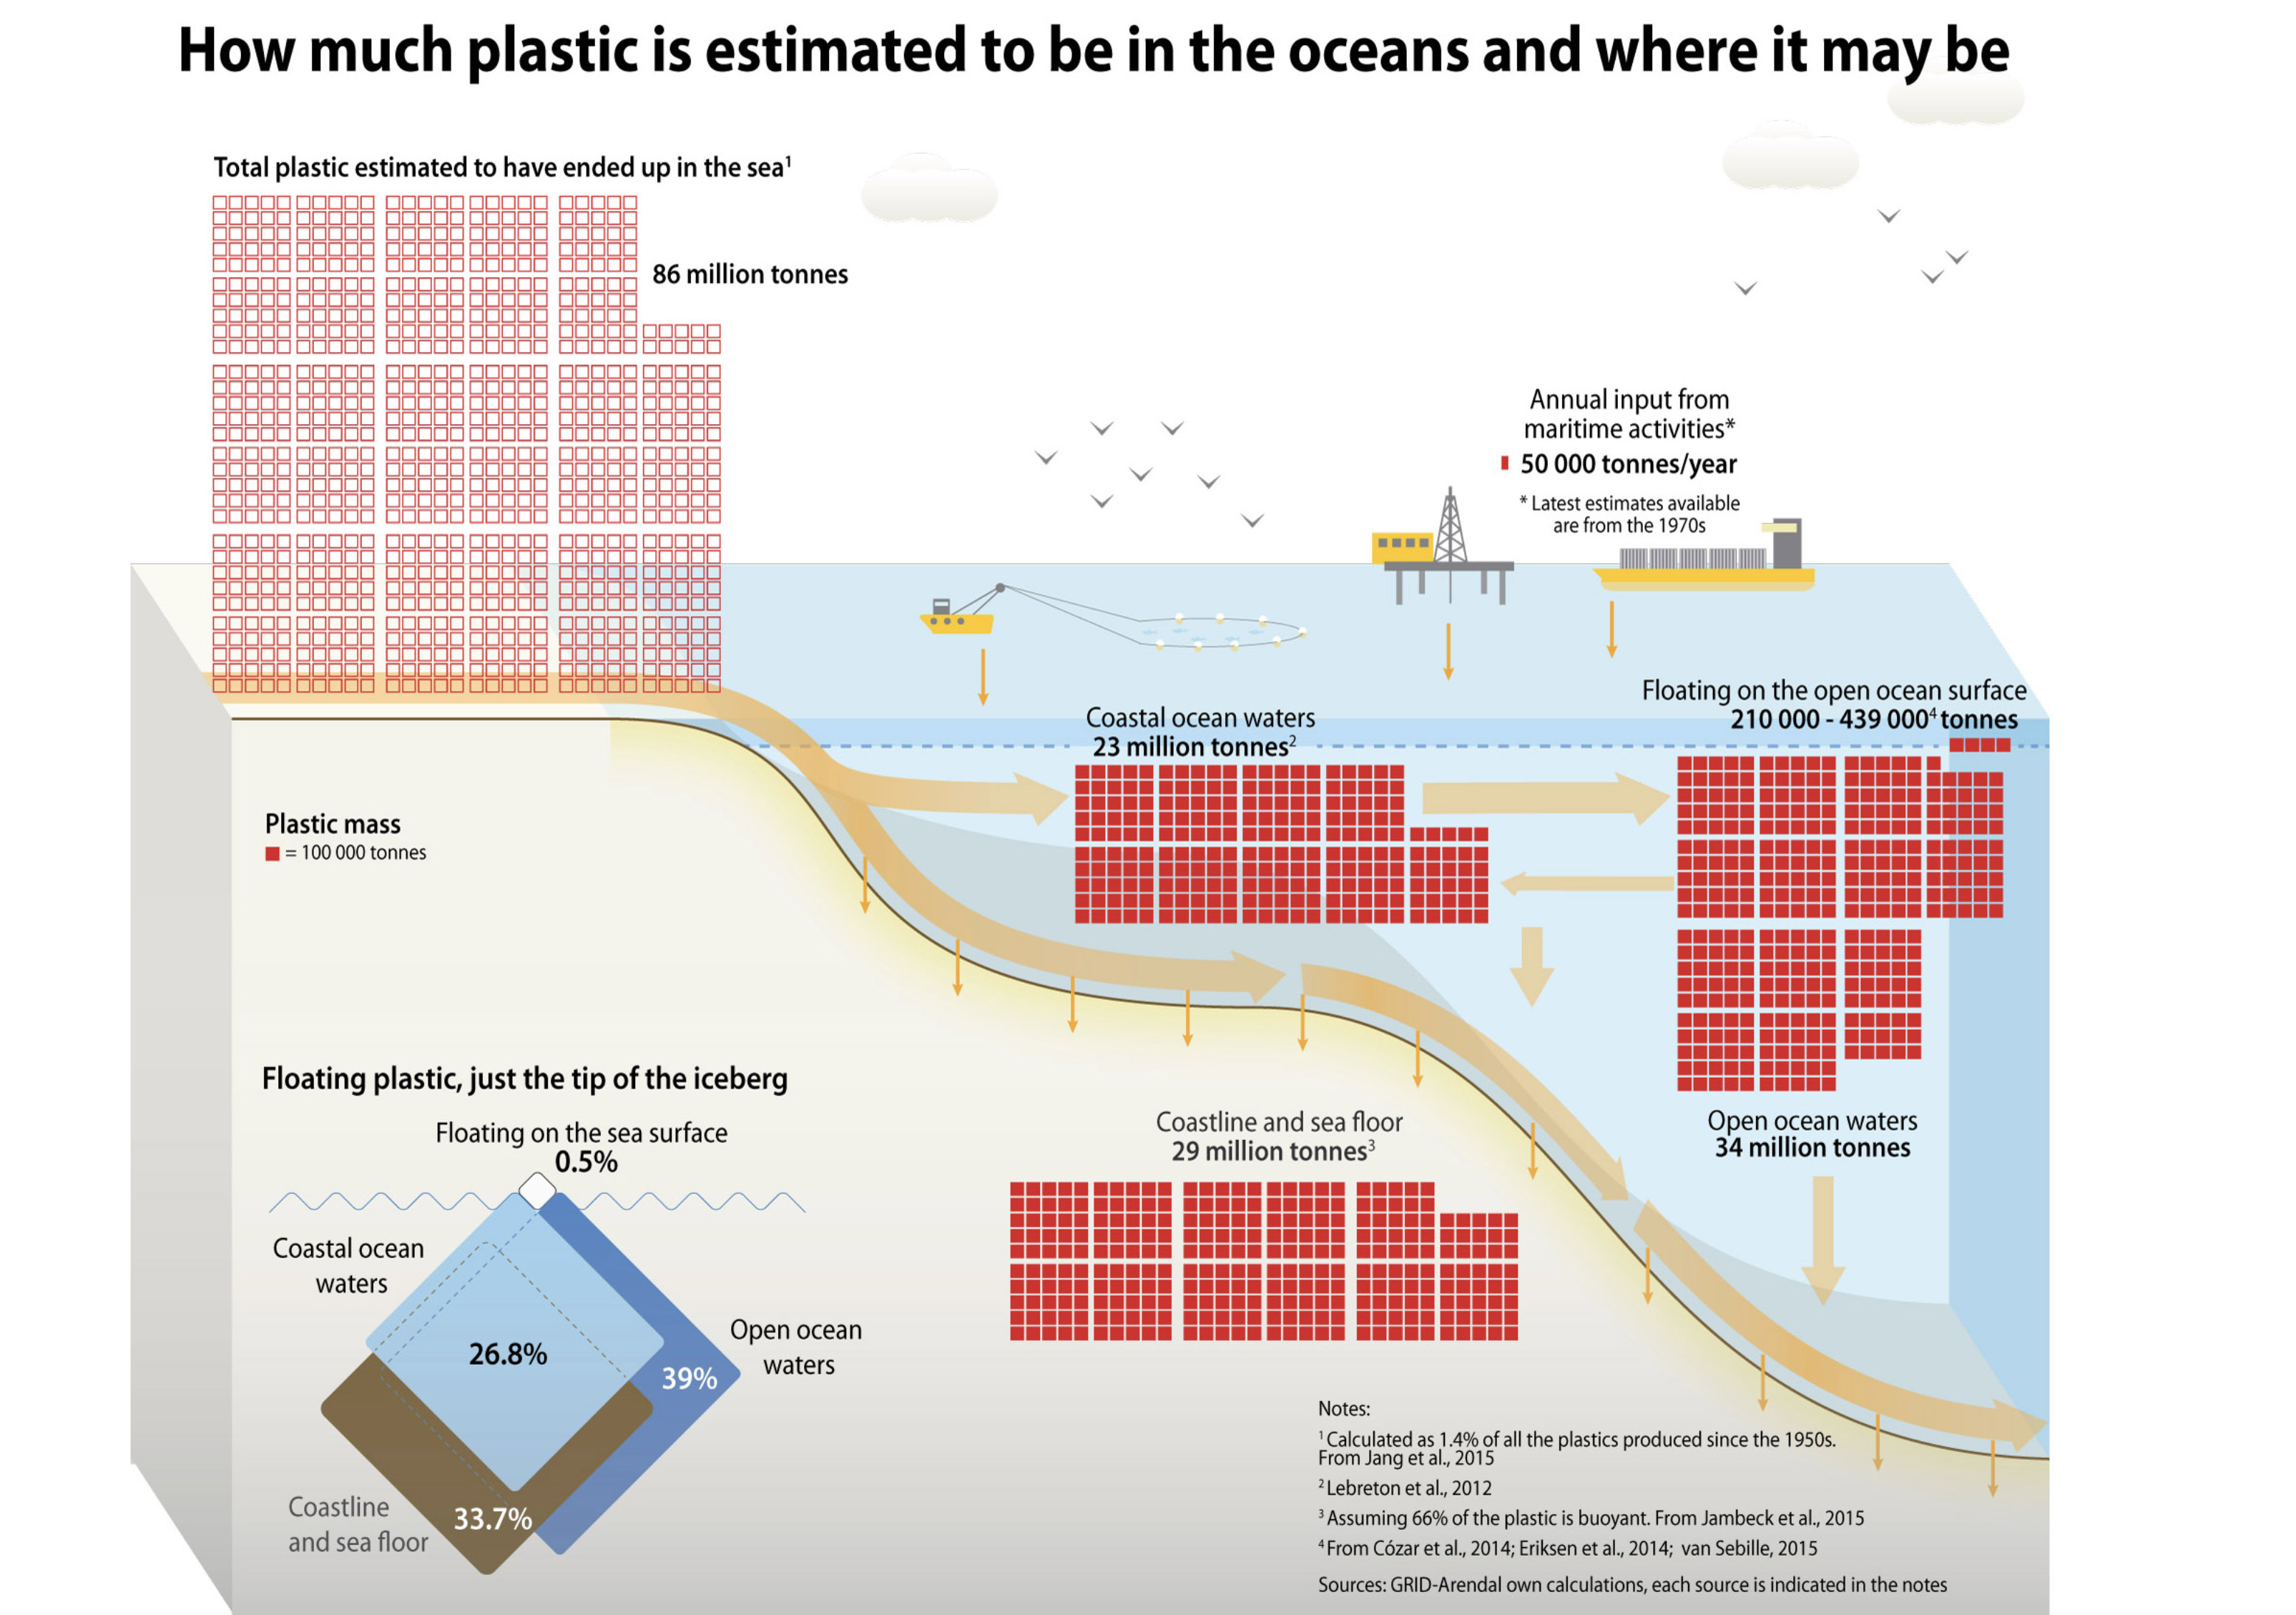 Our oceans now contain 86 million tonnes of plastic waste - and counting